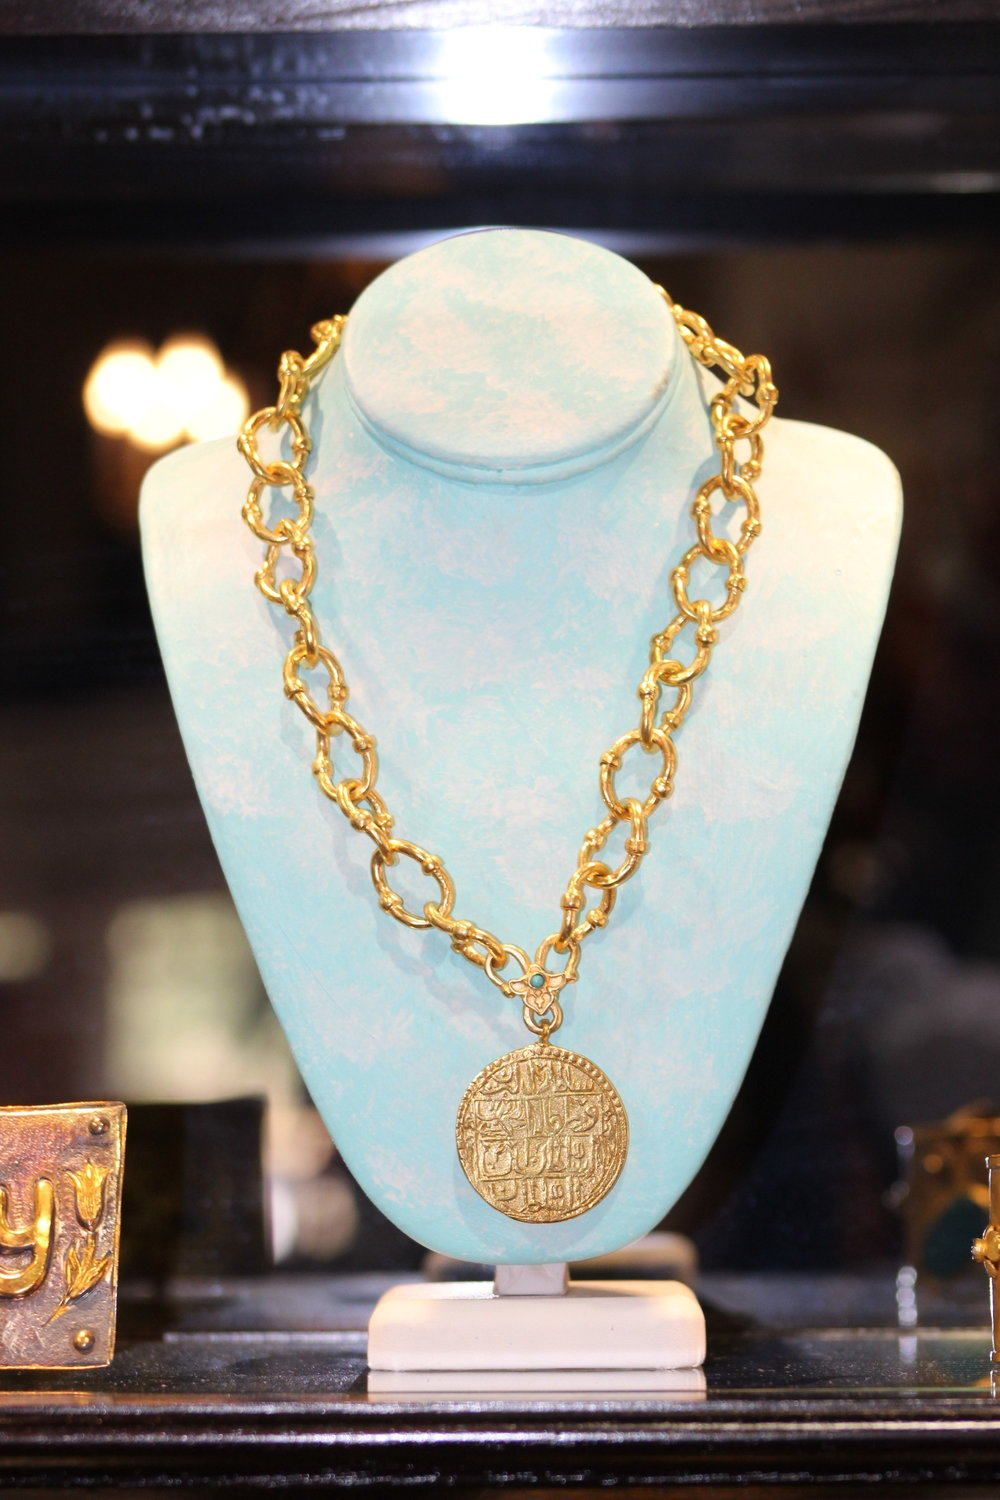 Tughra Gold Link Necklace with Turquoise